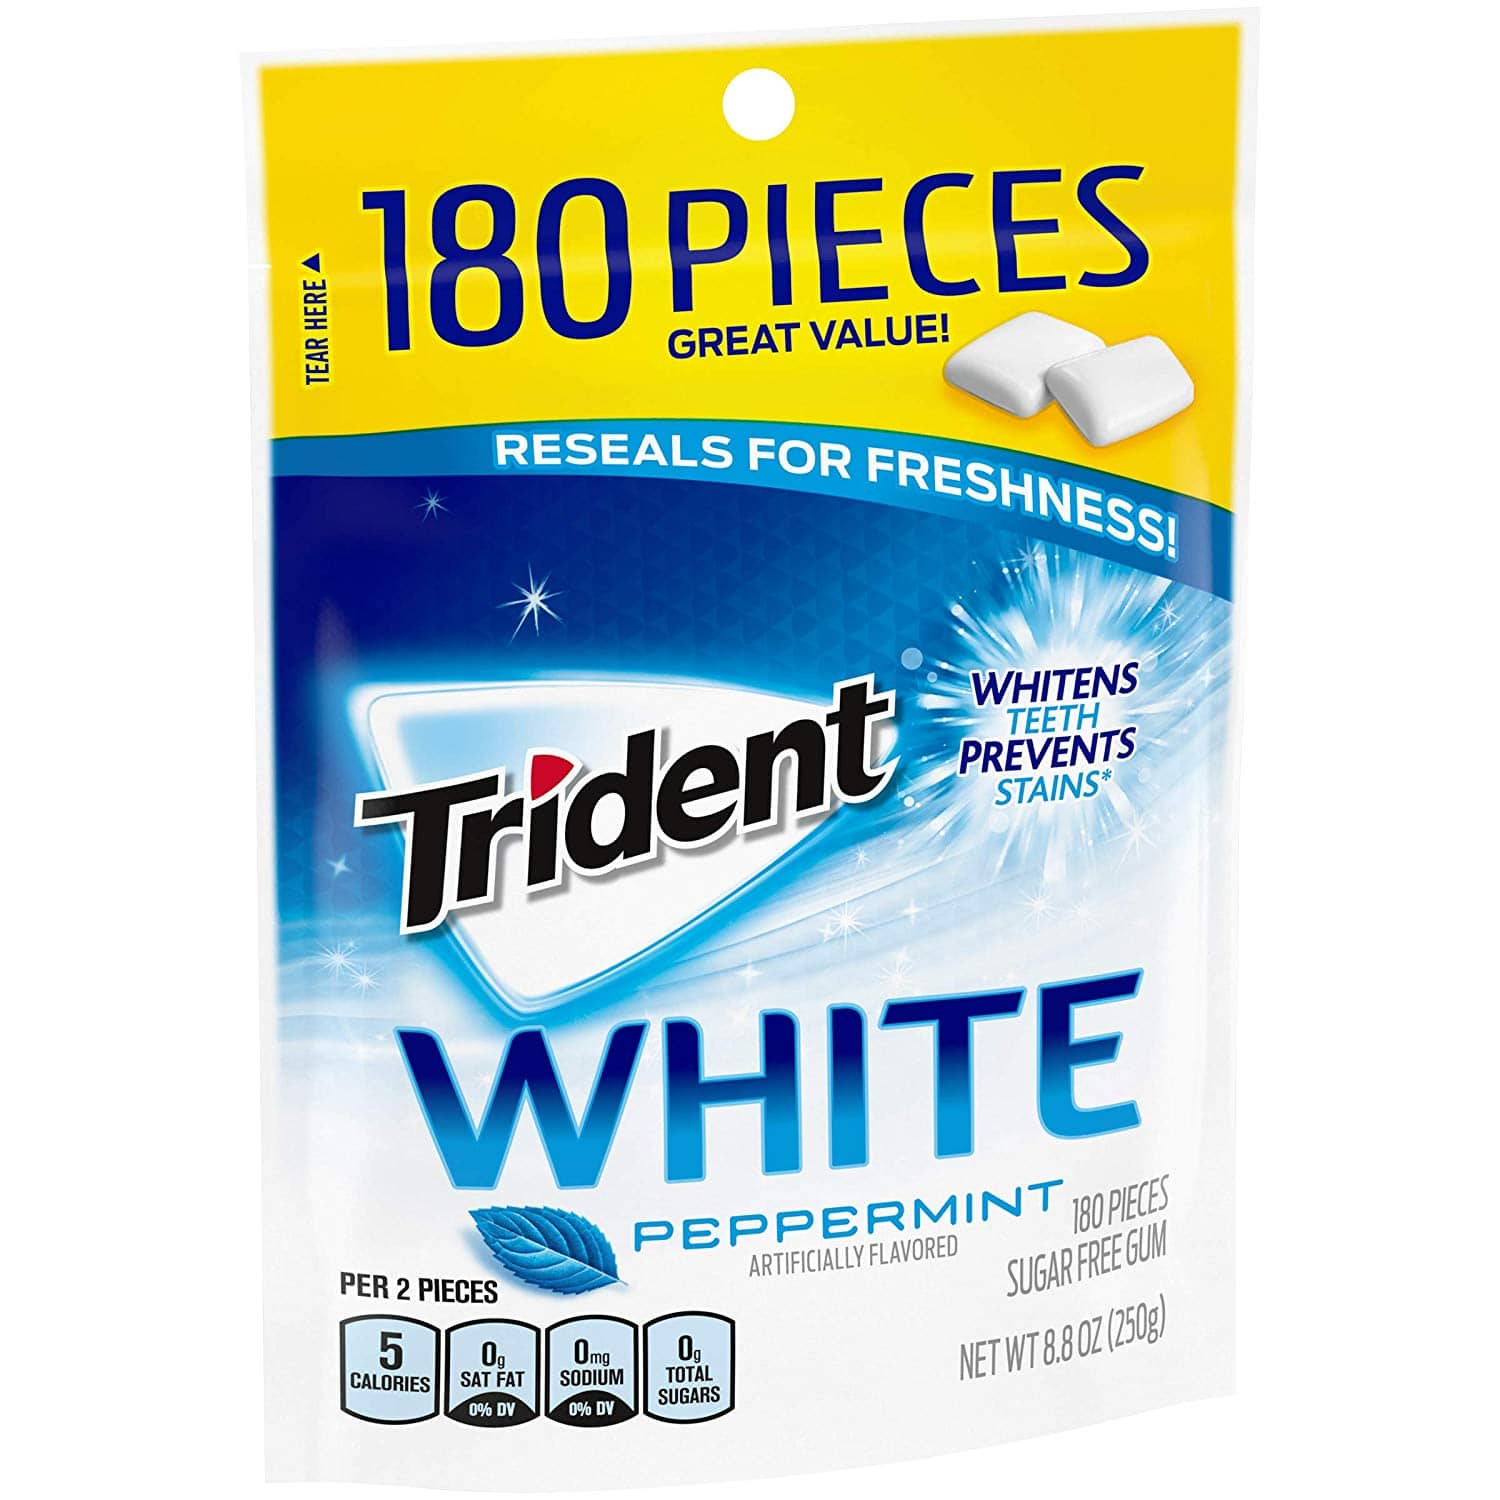 Amazon: 4 x 180 Count Trident White Sugar-Free Gum (Peppermint) $6.68 or Lower w/ S&S